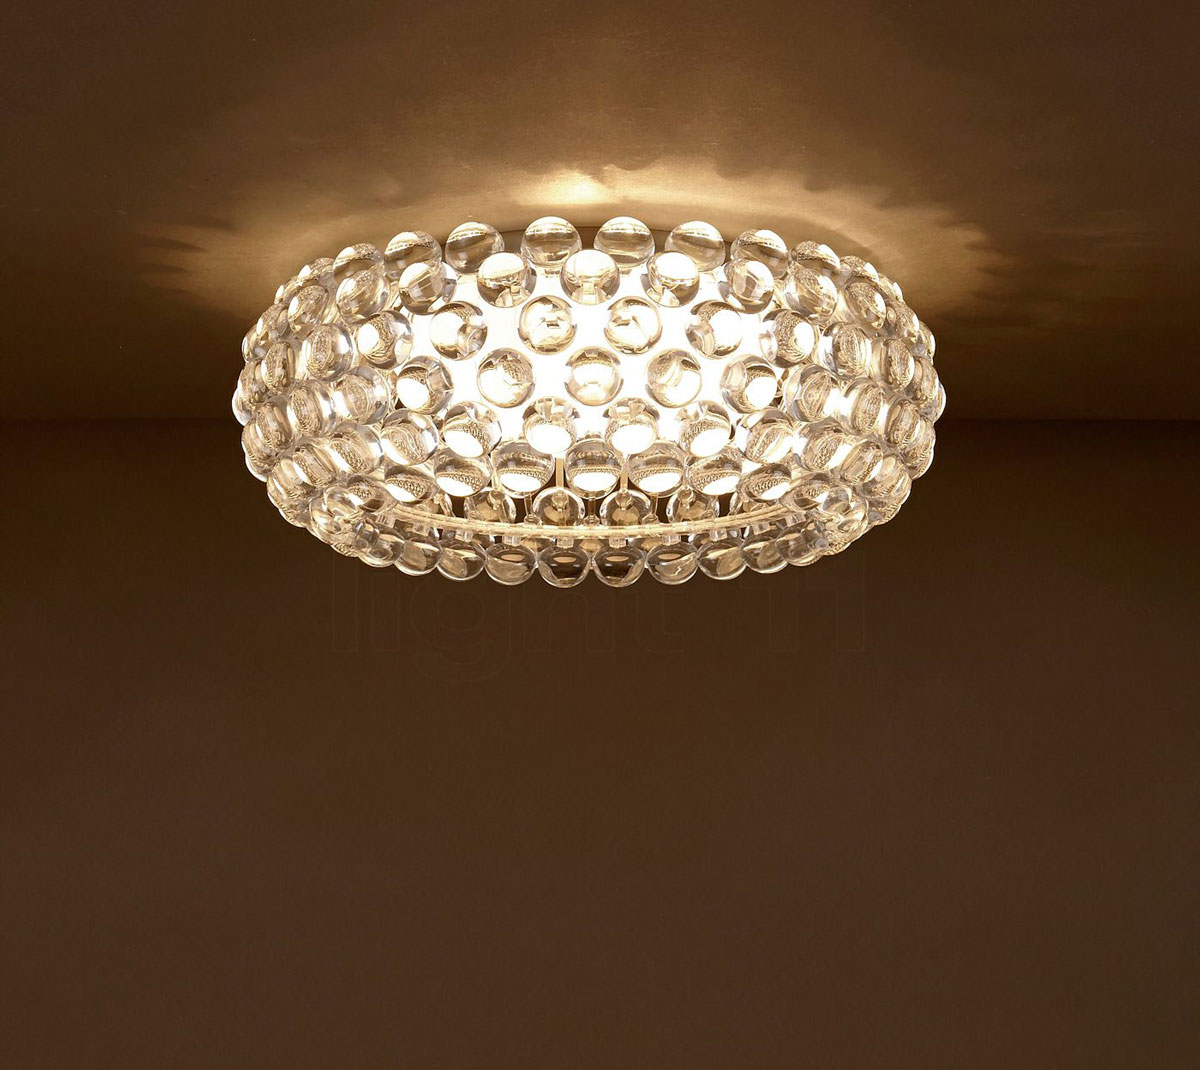 Caboche Lampe Luminaires Plafonniers Bianca Design Solutions Lille